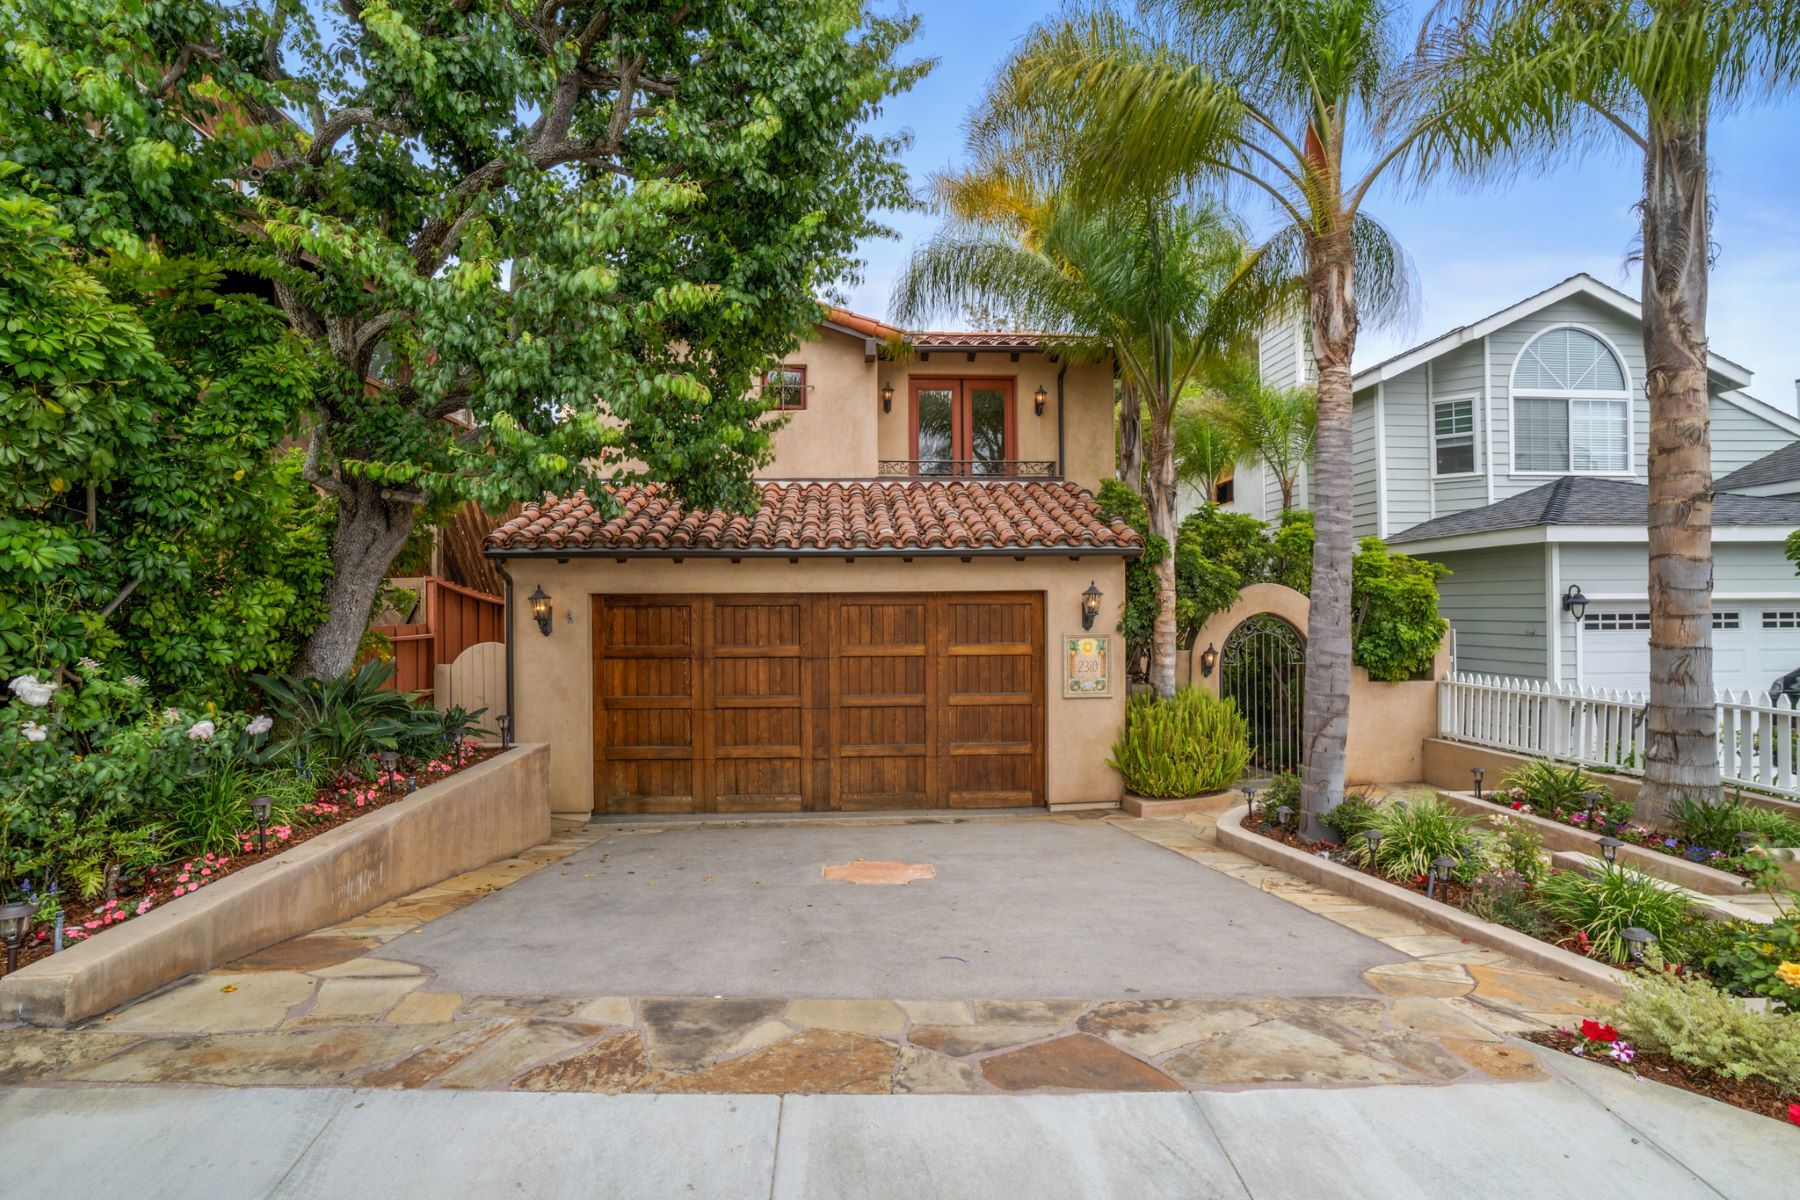 Single Family Home for Sale at 2310 Palm Av, Manhattan Beach 90266 2310 Palm Ave Manhattan Beach, California 90266 United States